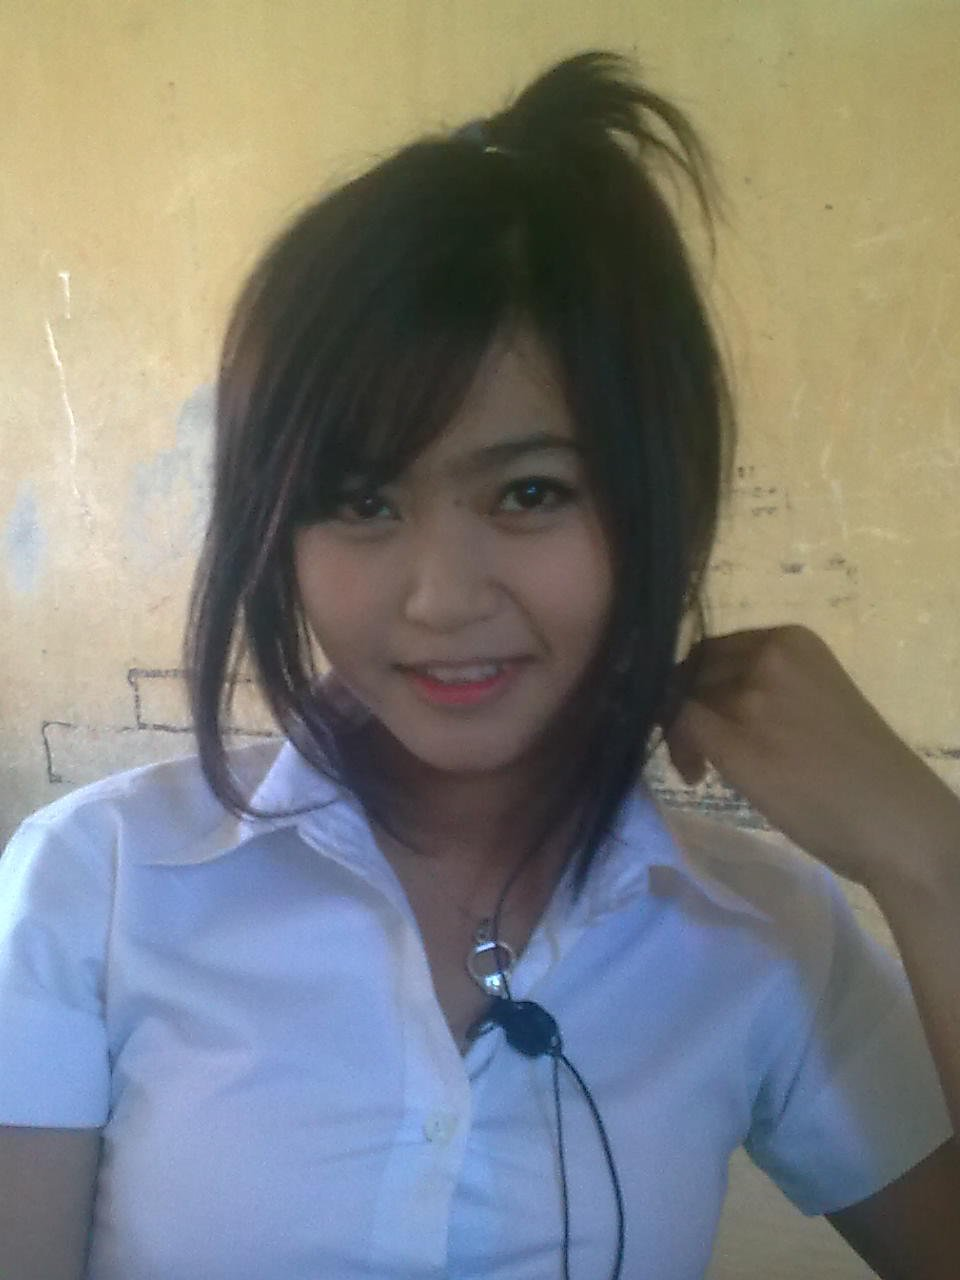 lovely style with cute girl of - 86.3KB